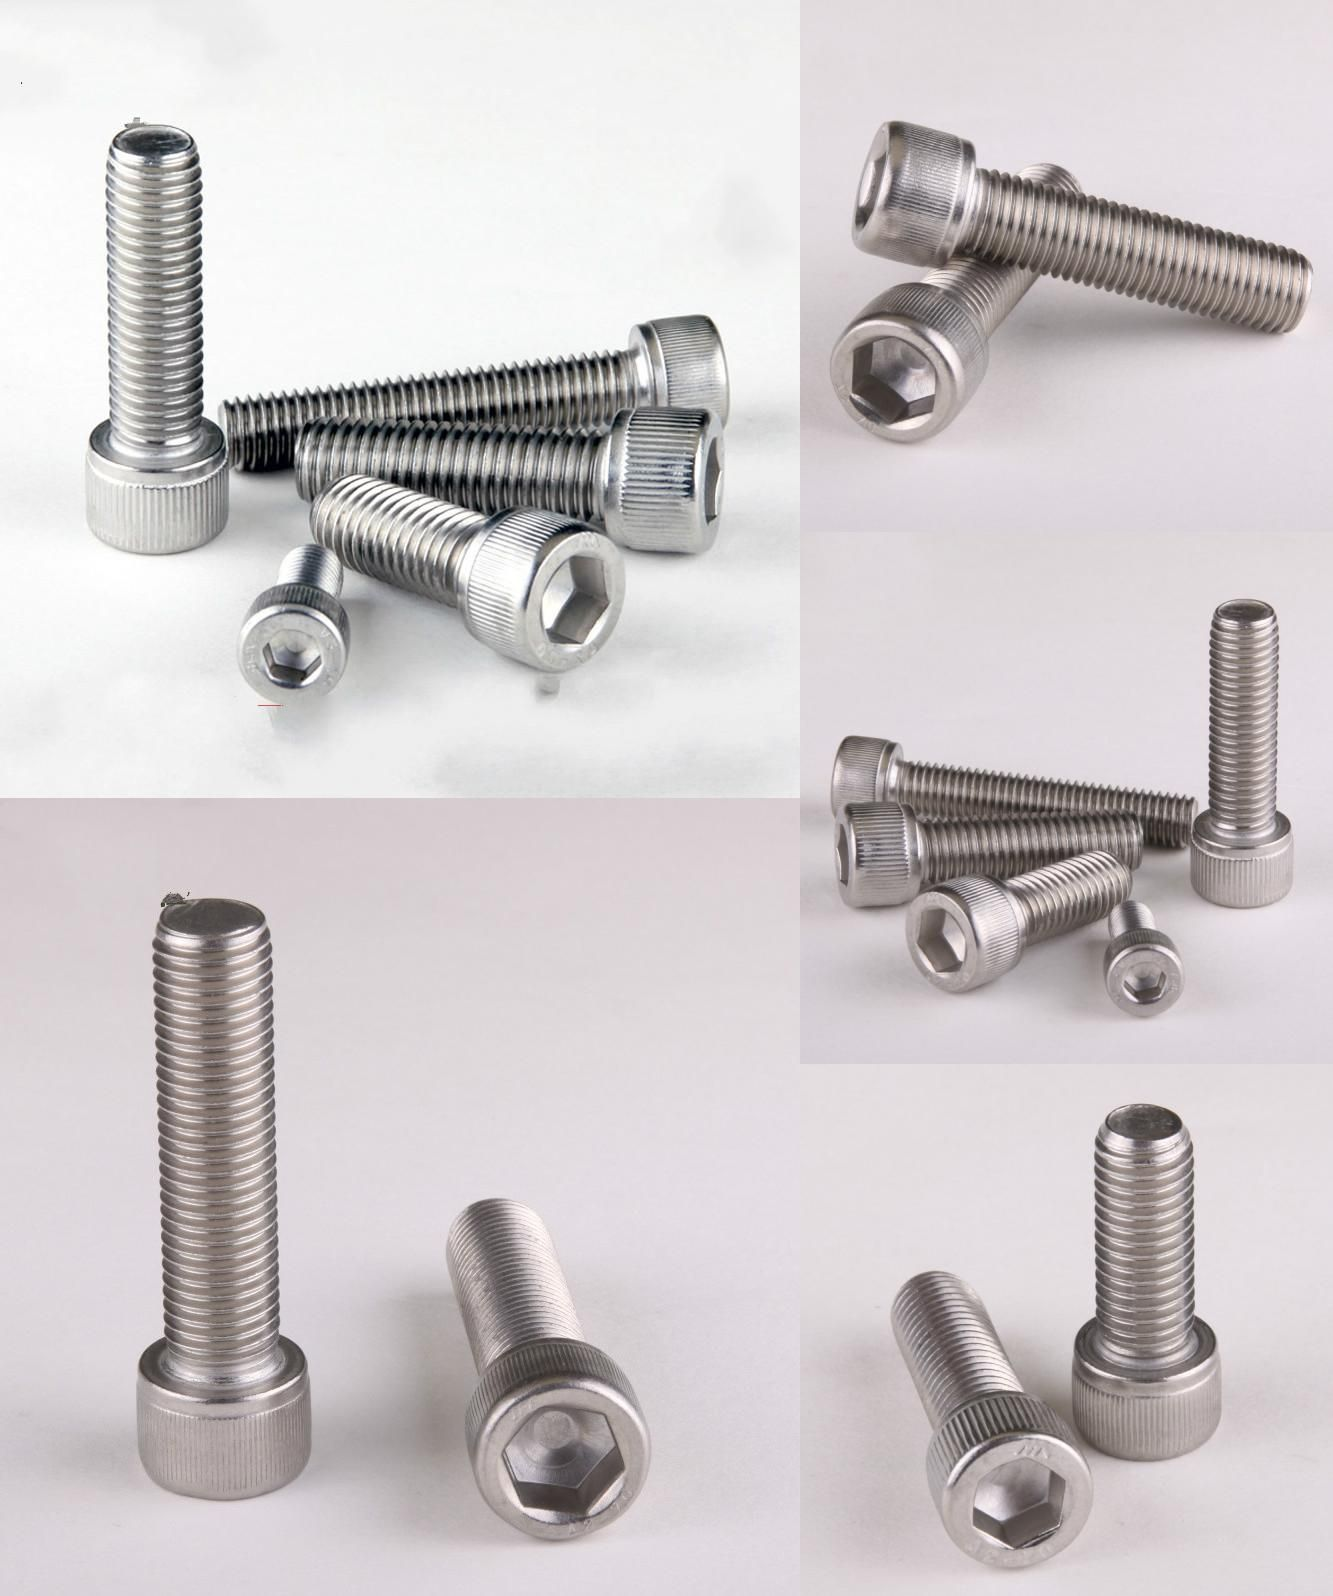 1 52us 5 Off 2pcs 304 Stainless Allen Bolt Socket Cap Screw Hex Head Allen Key Din912 M10 16 20 25 30 35 40 100 Head Machine Screw Head Screwhead Cap Scre 2pcs Stainless Bolt